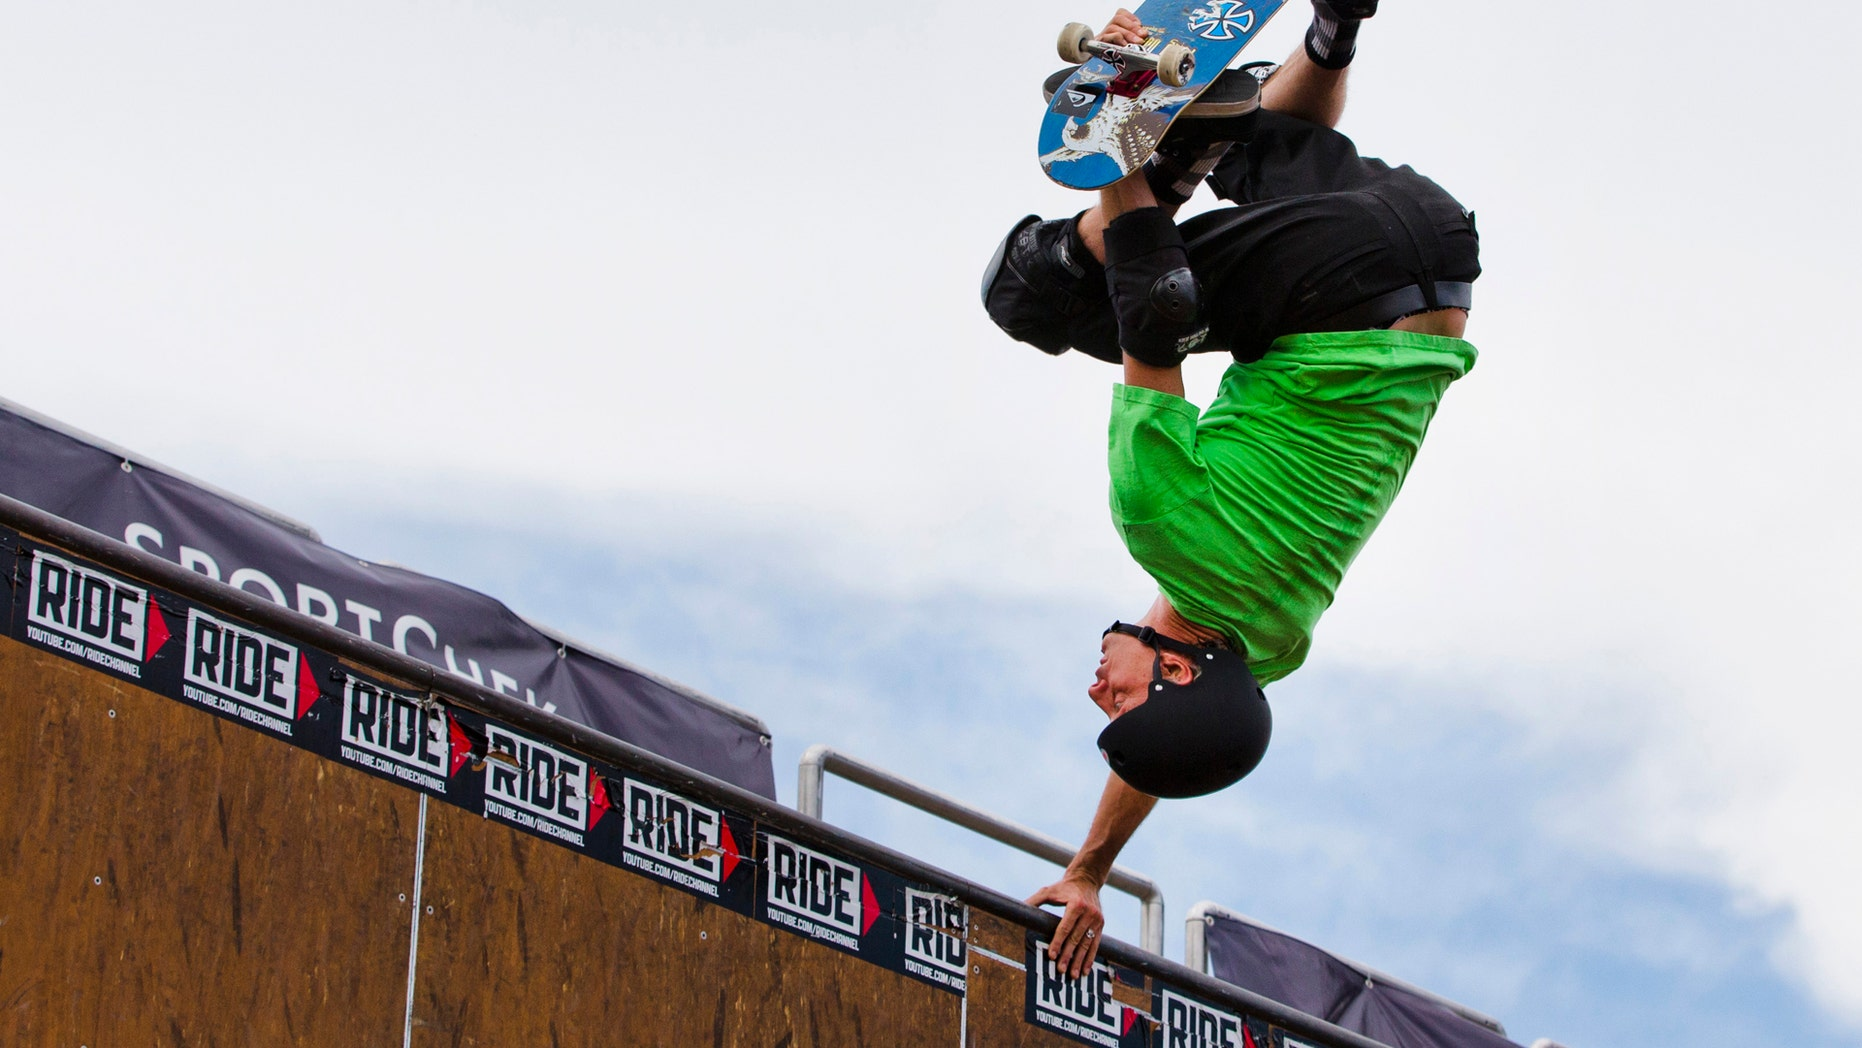 """File photo - Legendary skateboarder Tony Hawk performs during the """"Tony Hawk Tour"""" in Toronto, July 18, 2013. (REUTERS/Mark Blinch)"""